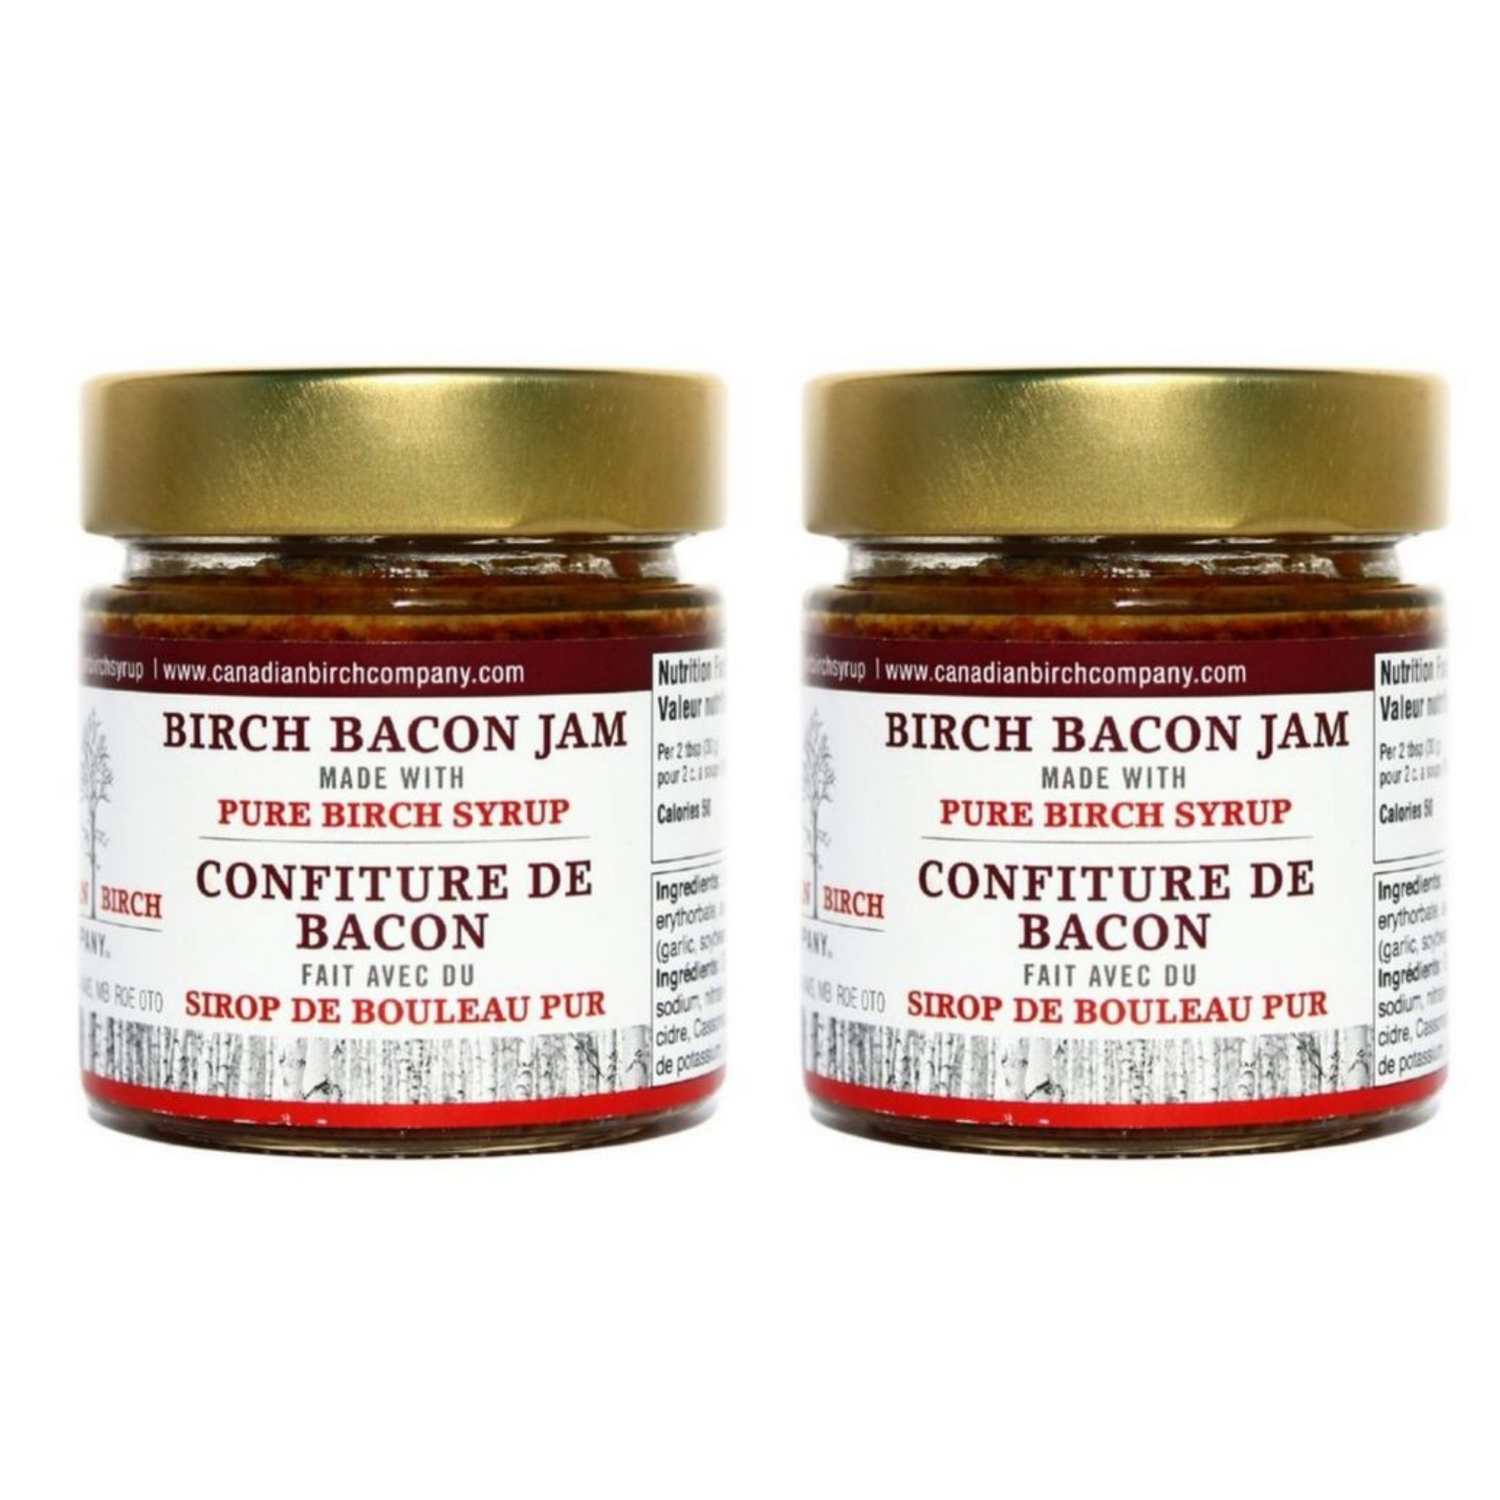 Two jarz of Birch Bacon Jam 212 ml size is pictured. Lid is gold in color.